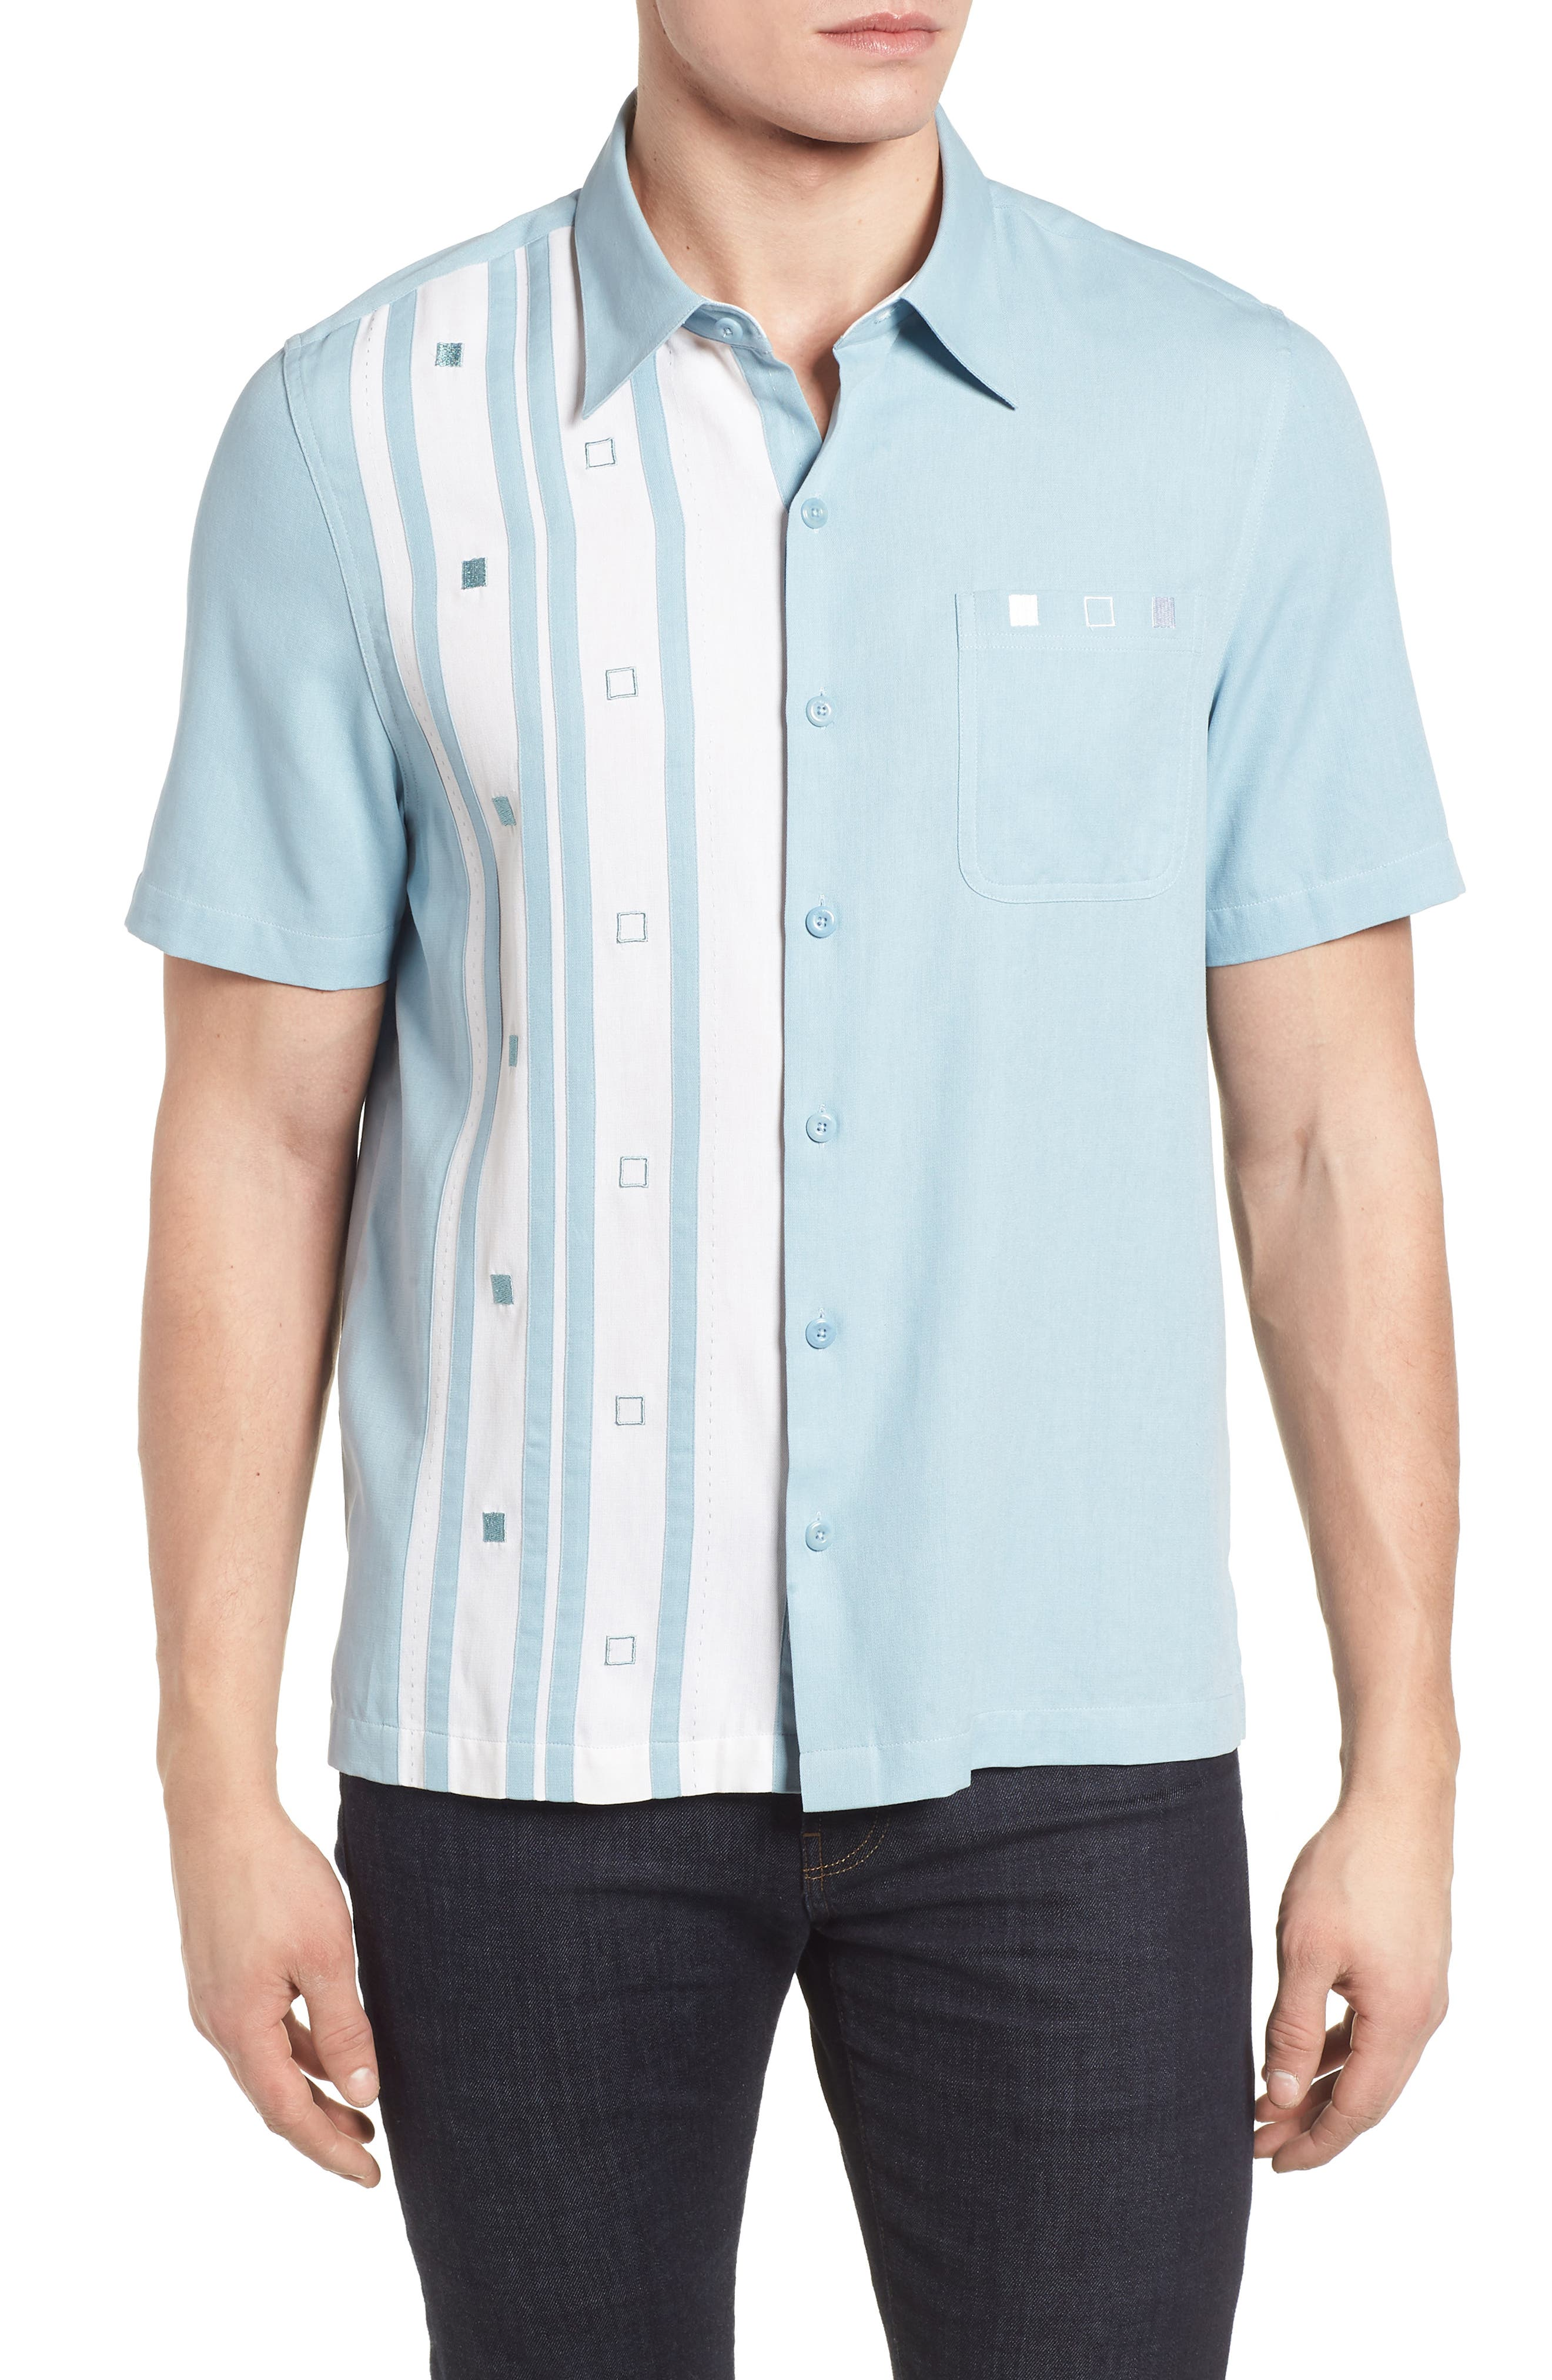 Retromod Camp Shirt,                         Main,                         color, Niagra Blue